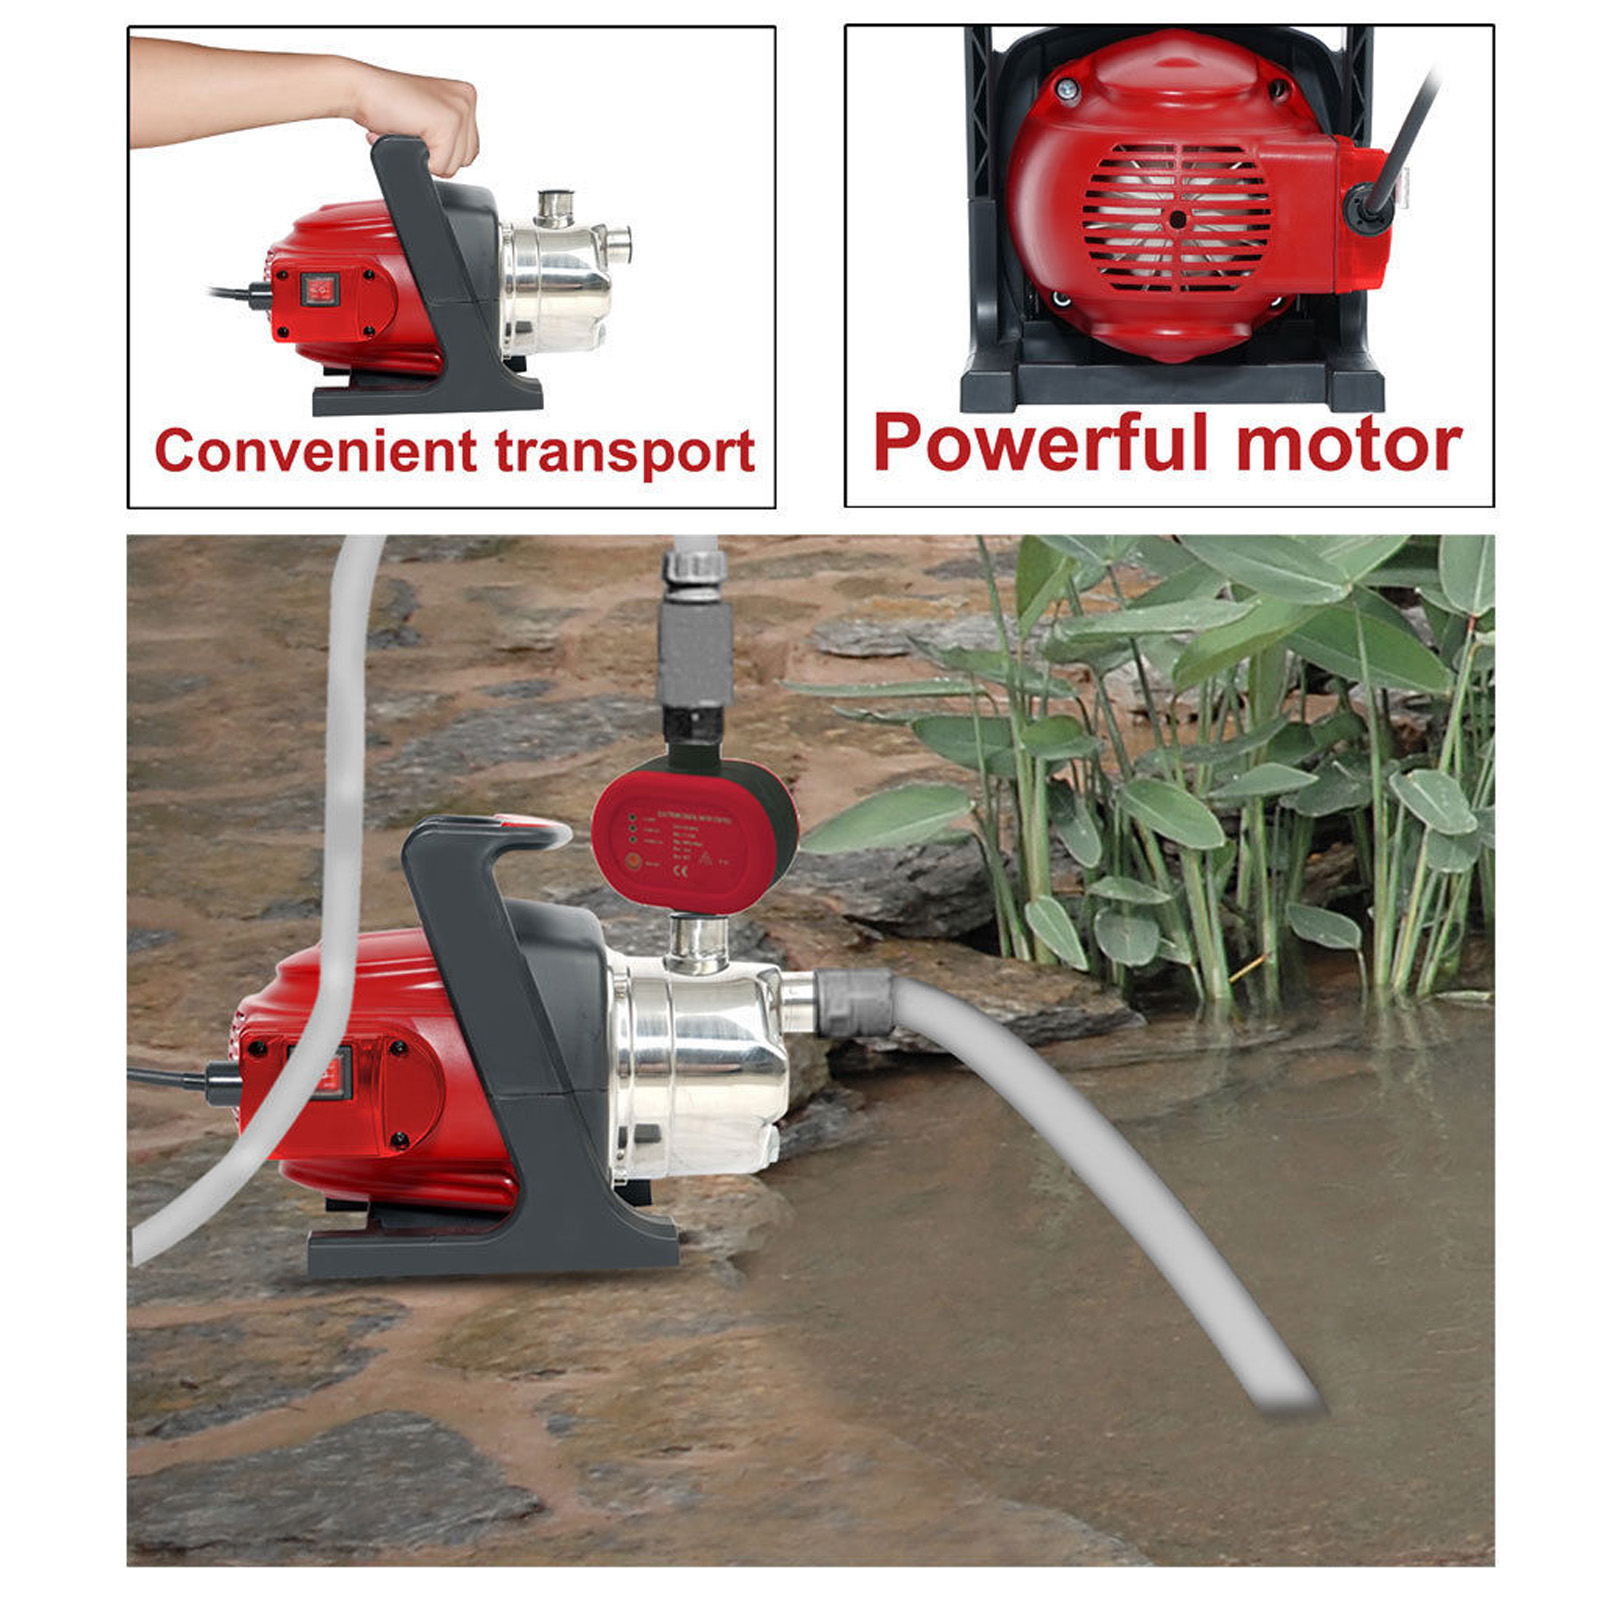 Matrix 1200w rain water tank pump stainless steel pressure switch irrigation ebay for Portable watering tanks for gardens